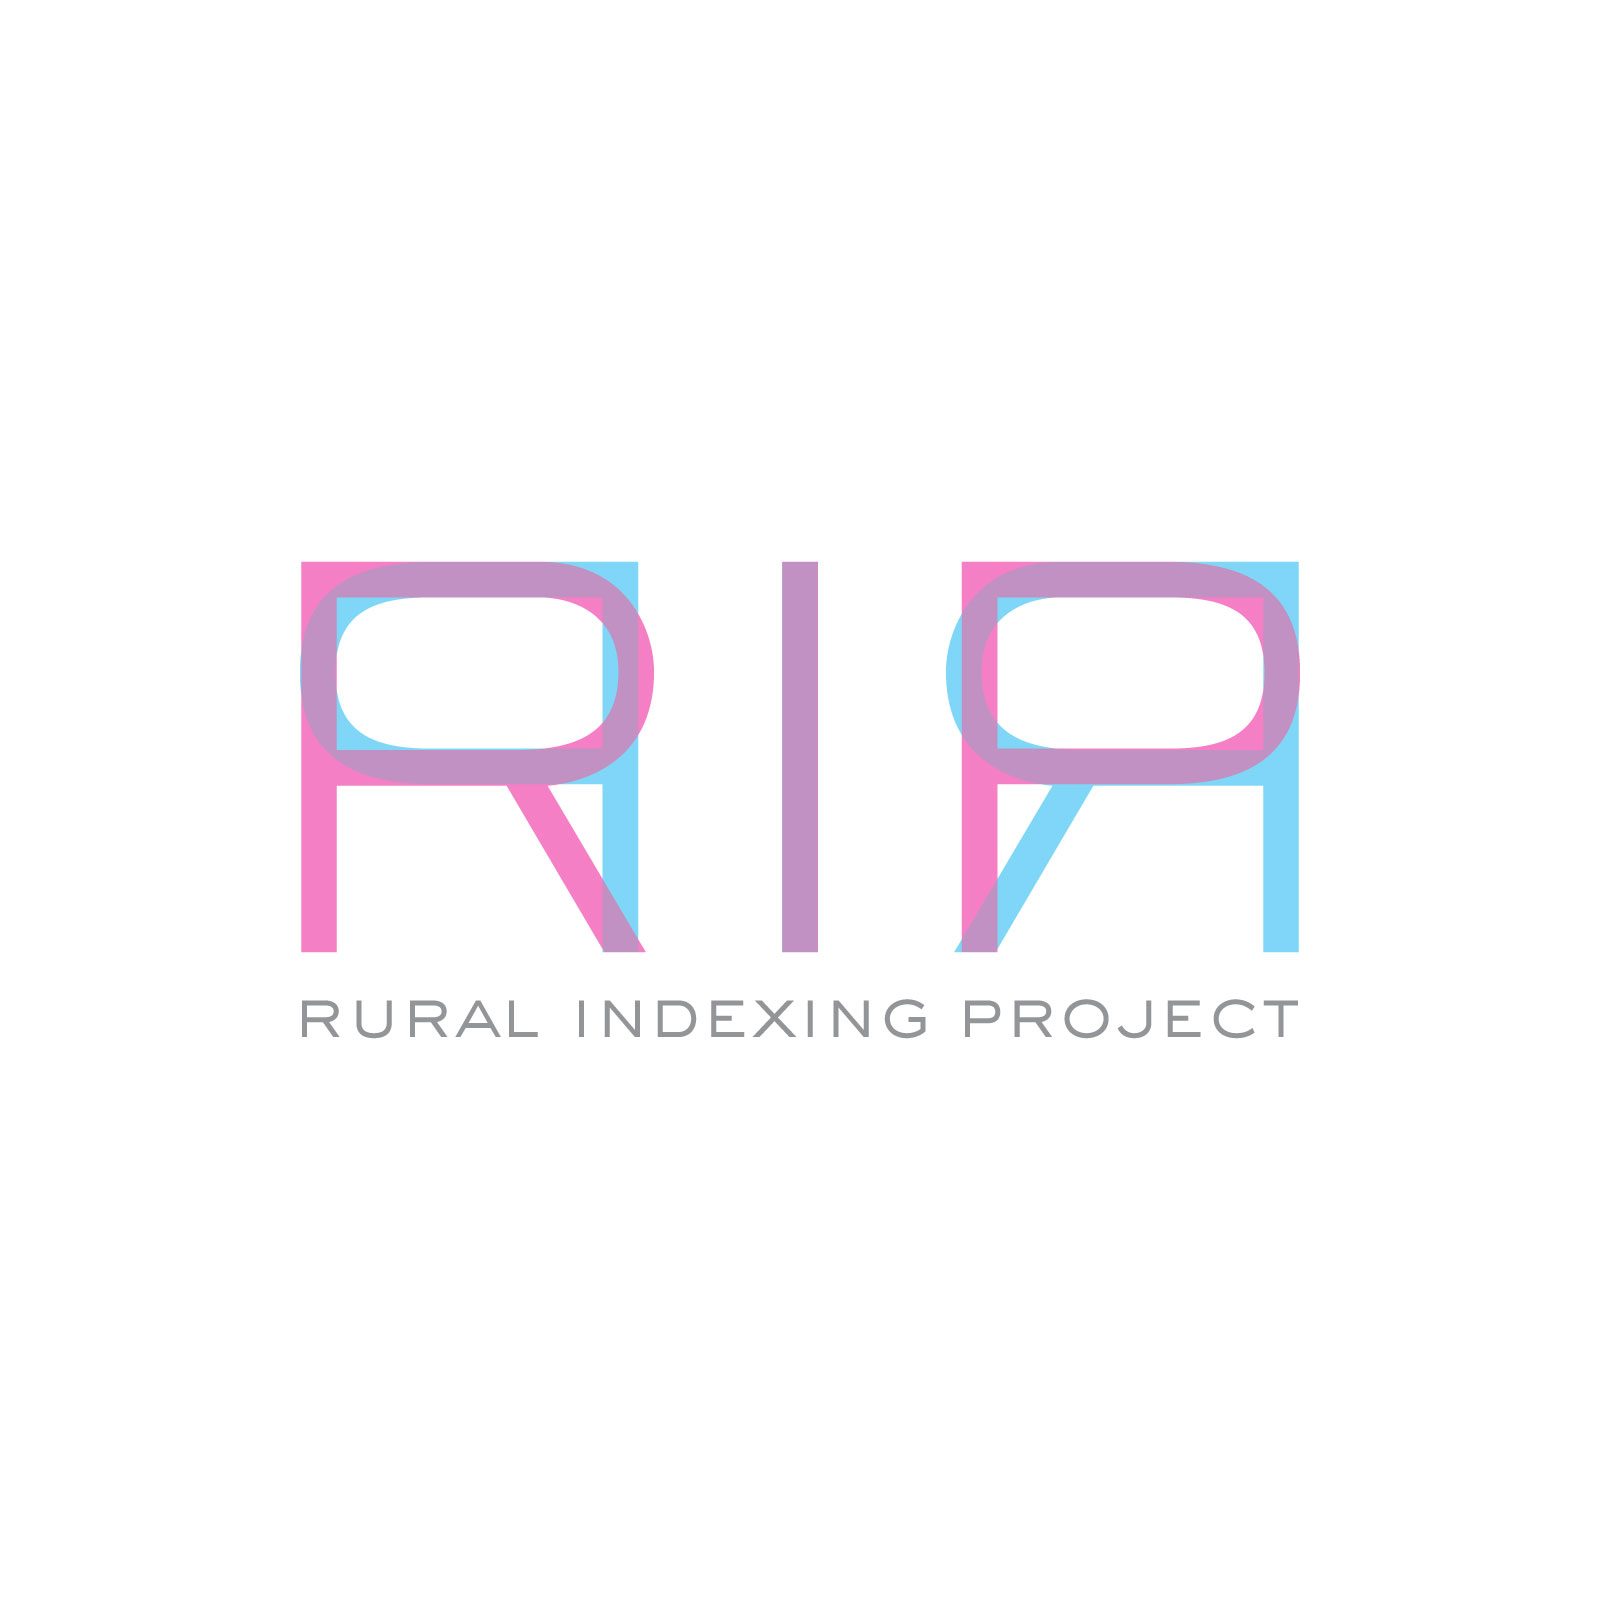 Rural Indexing Project logo